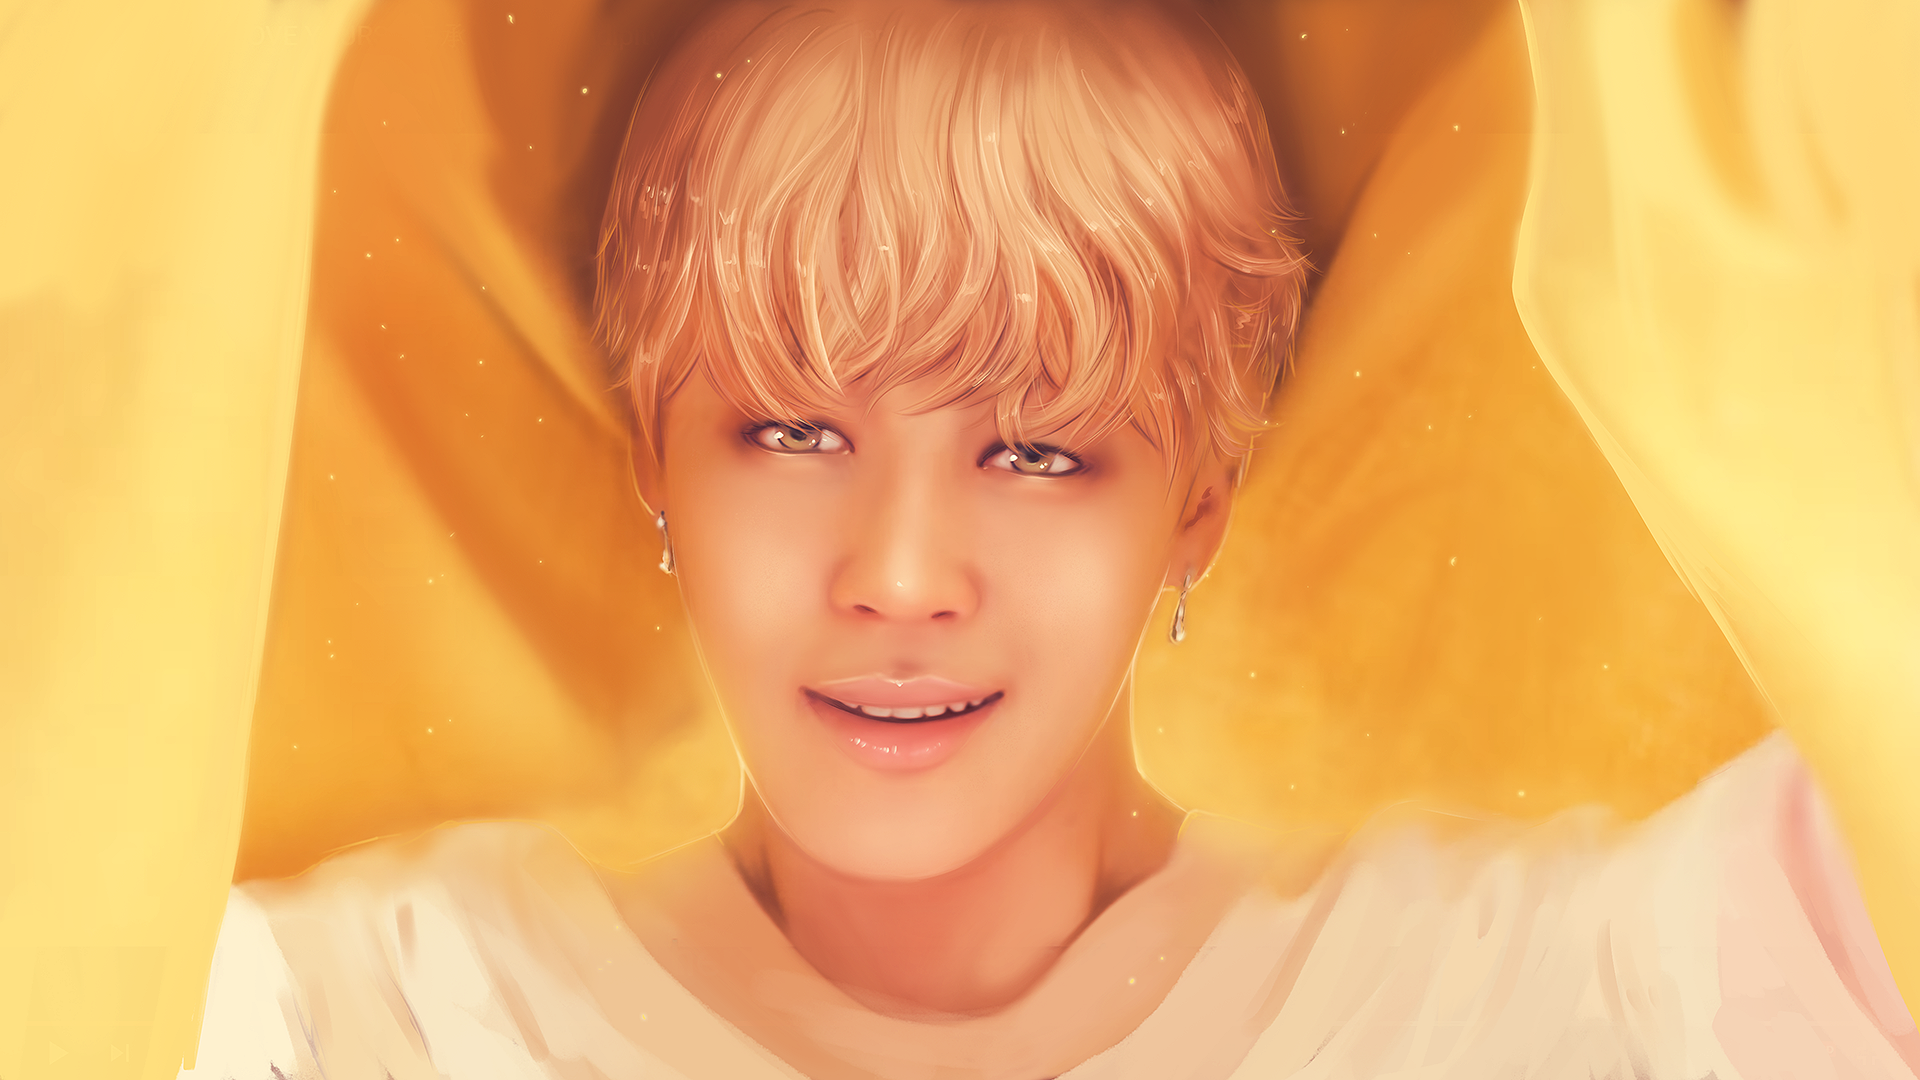 Jimin Serendipity desktop wallpaper by ...